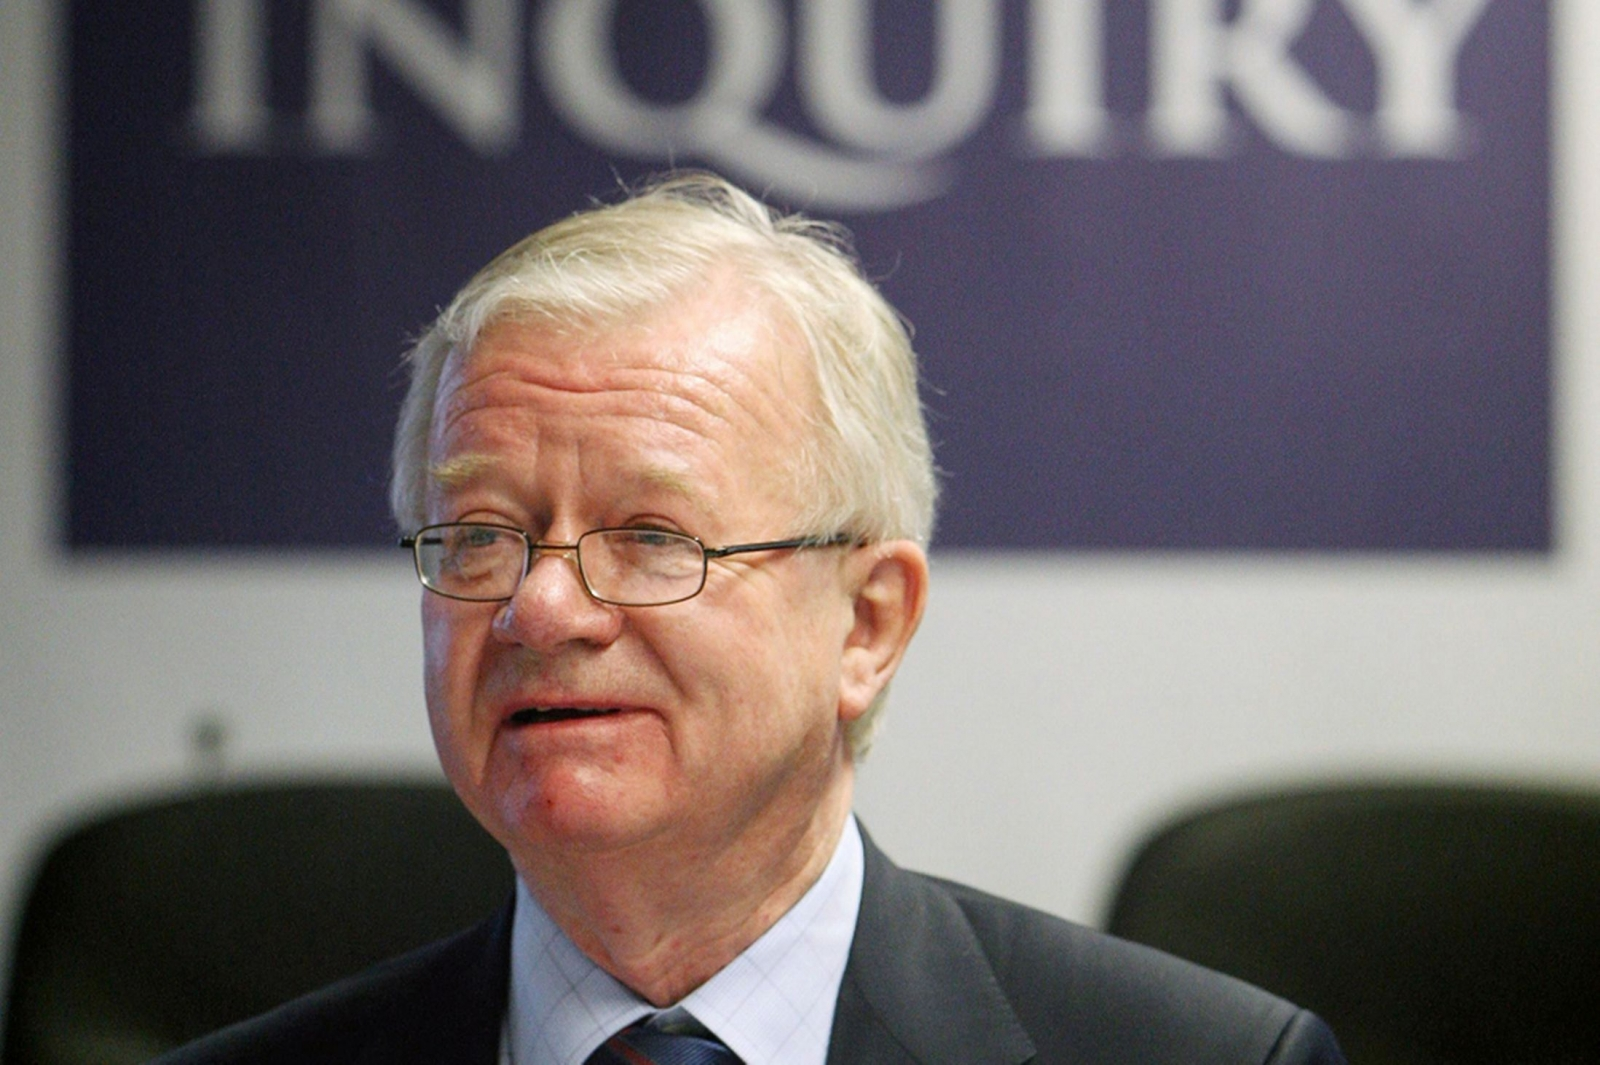 John Chilcot grilled over delay in Iraq war inquiry report